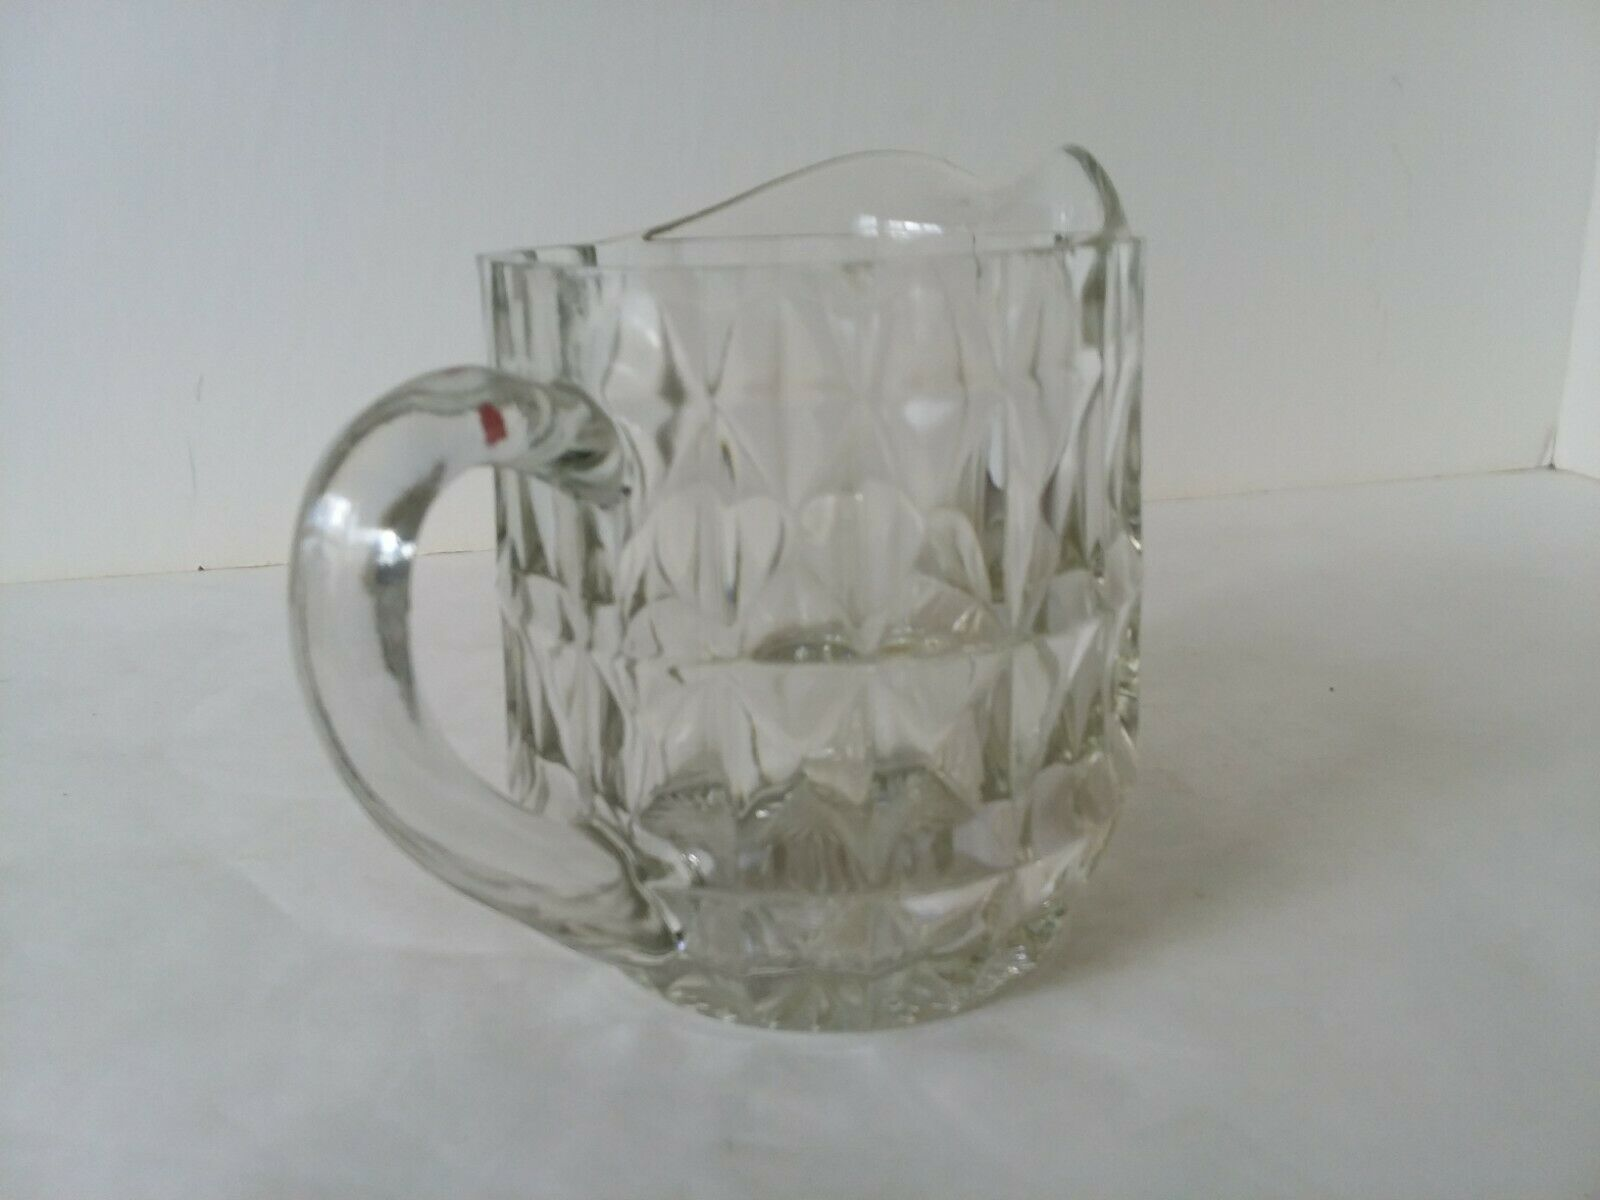 Small Personal Cut Glass Juice Milk Pitcher Breakfast in Bed